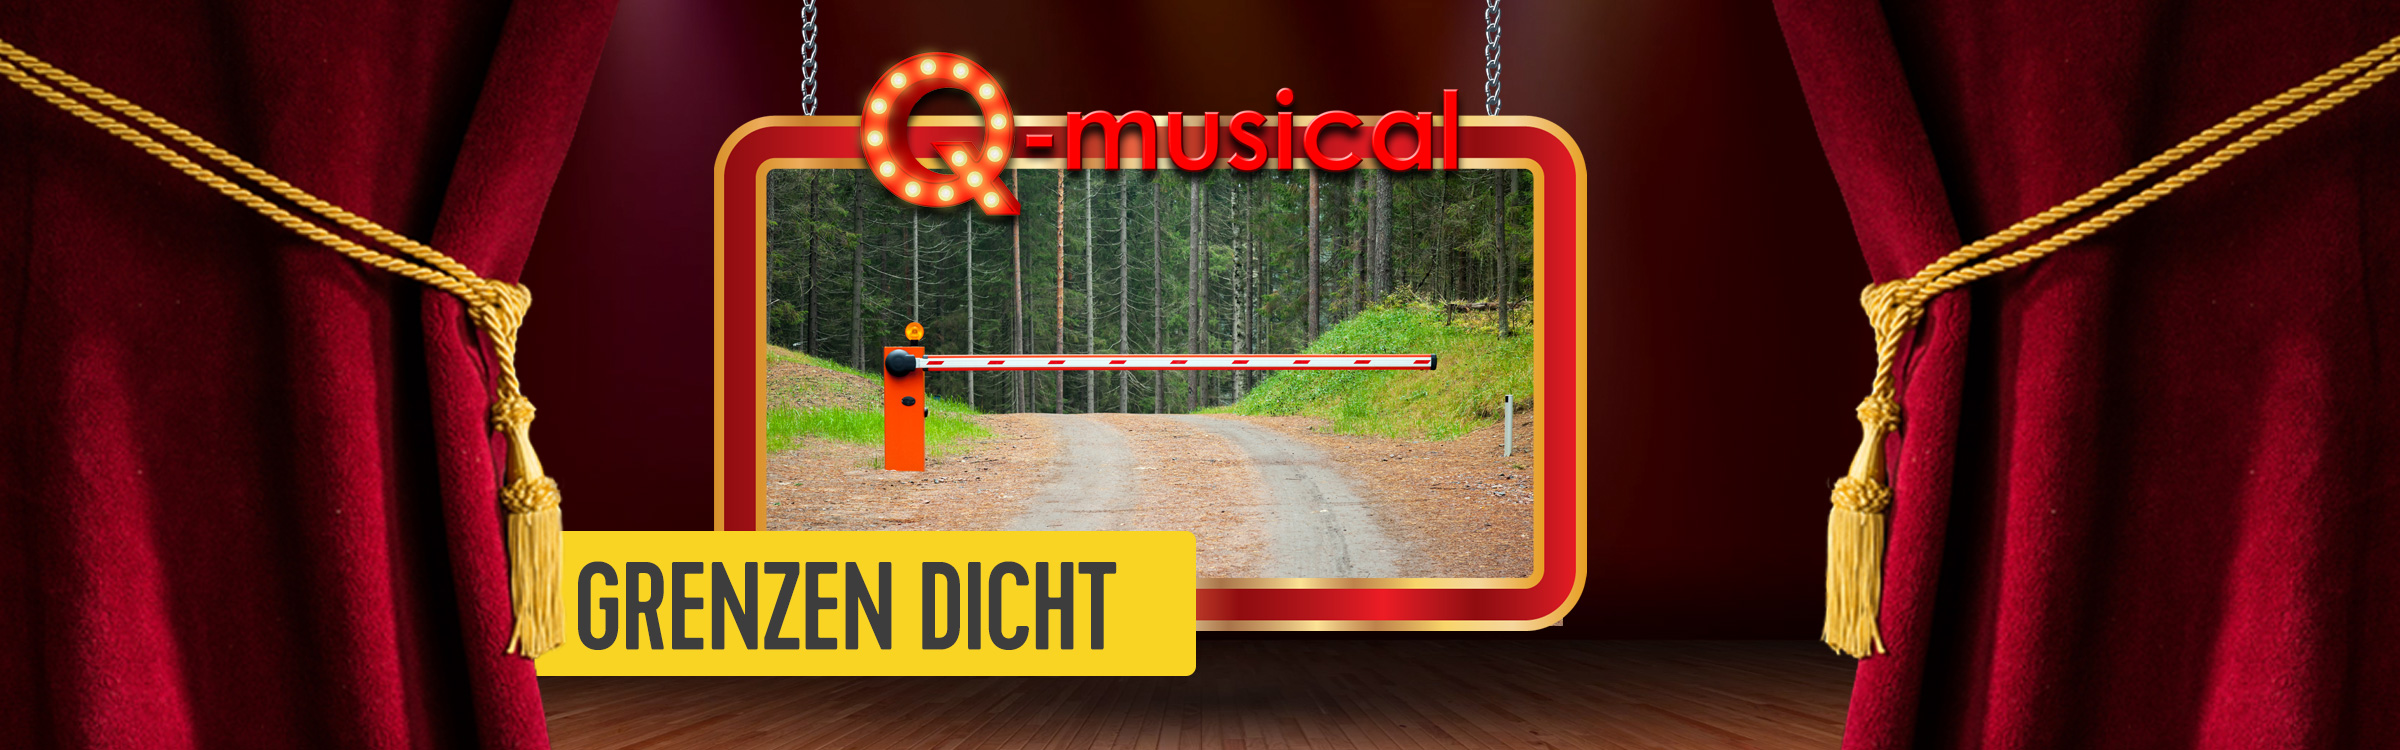 Q musical site thumb grenzendicht